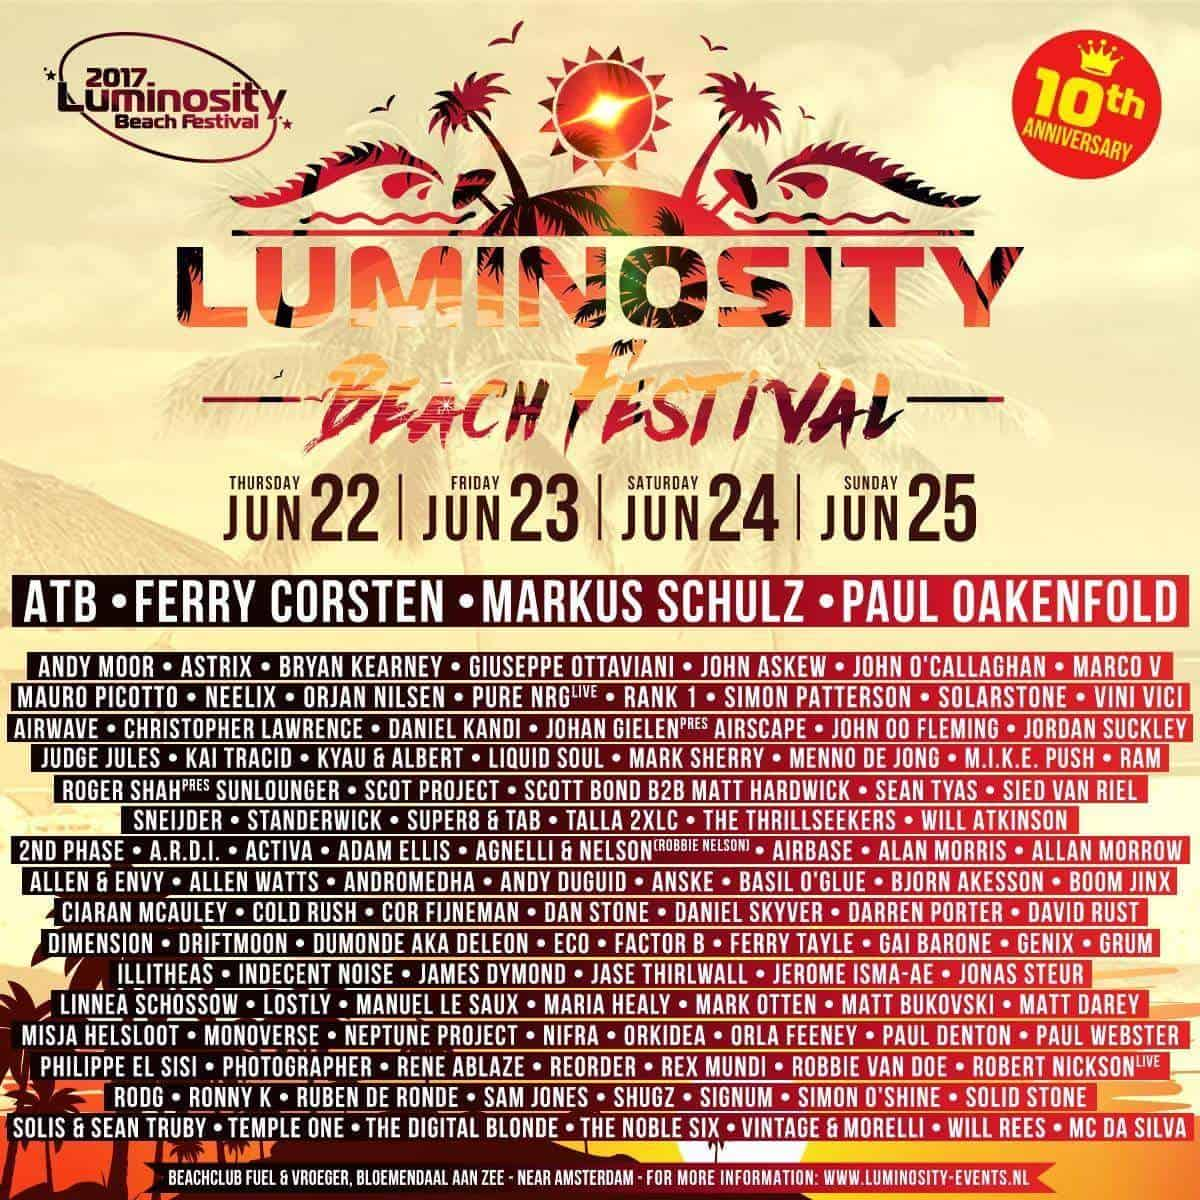 Luminosity beach festival 2017 22 25062017 bloemendaal luminosity beach festival 2017 22 25062017 bloemendaal netherlands malvernweather Image collections